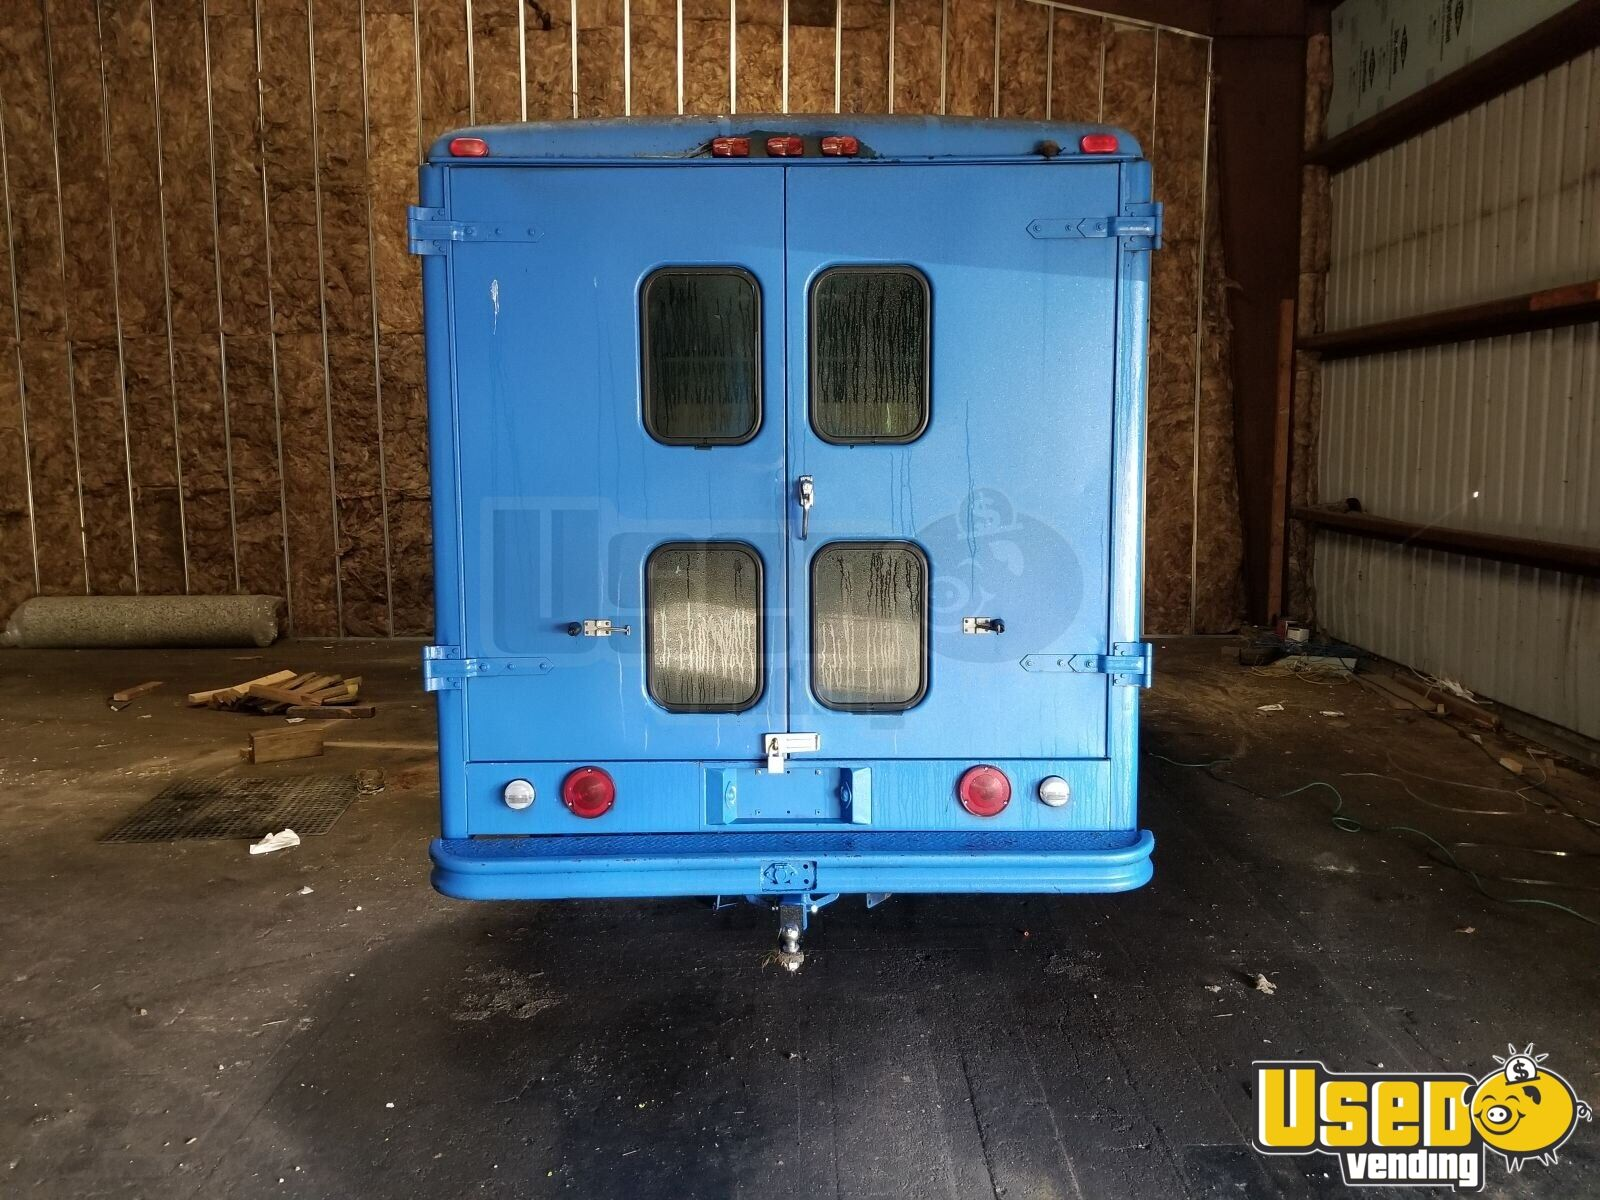 1993 Chevrolet G30 Stepvan Removable Trailer Hitch Indiana Diesel Engine for Sale - 2